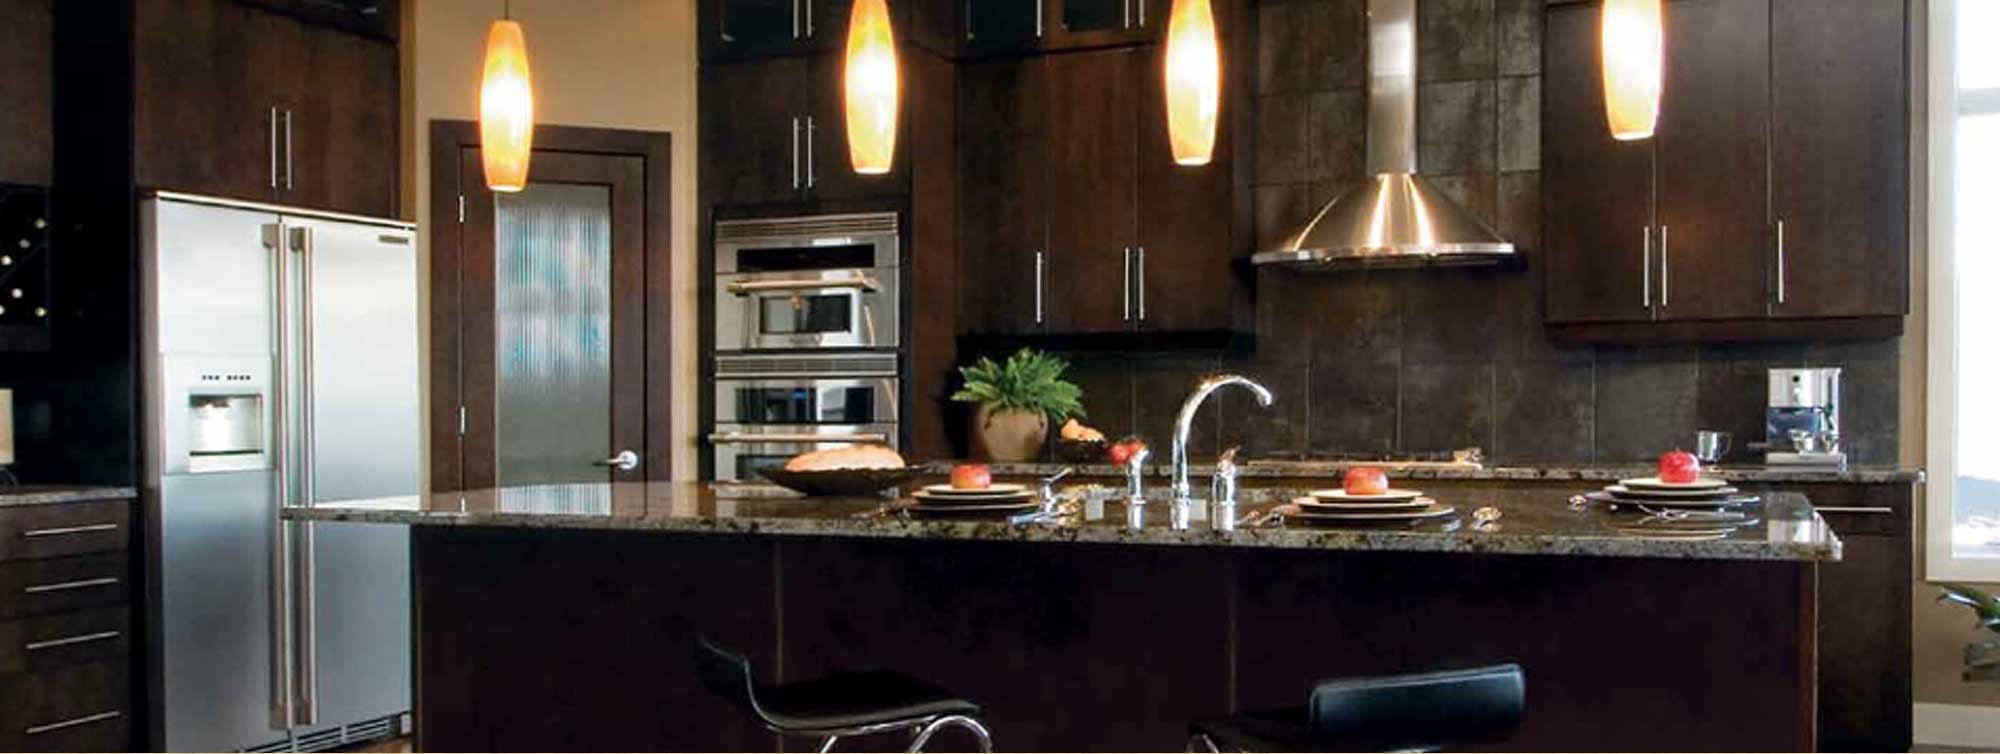 Custom Kitchen Cabinets Mississauga Classic Kitchen Designs Mississauga On Custom Kitchens